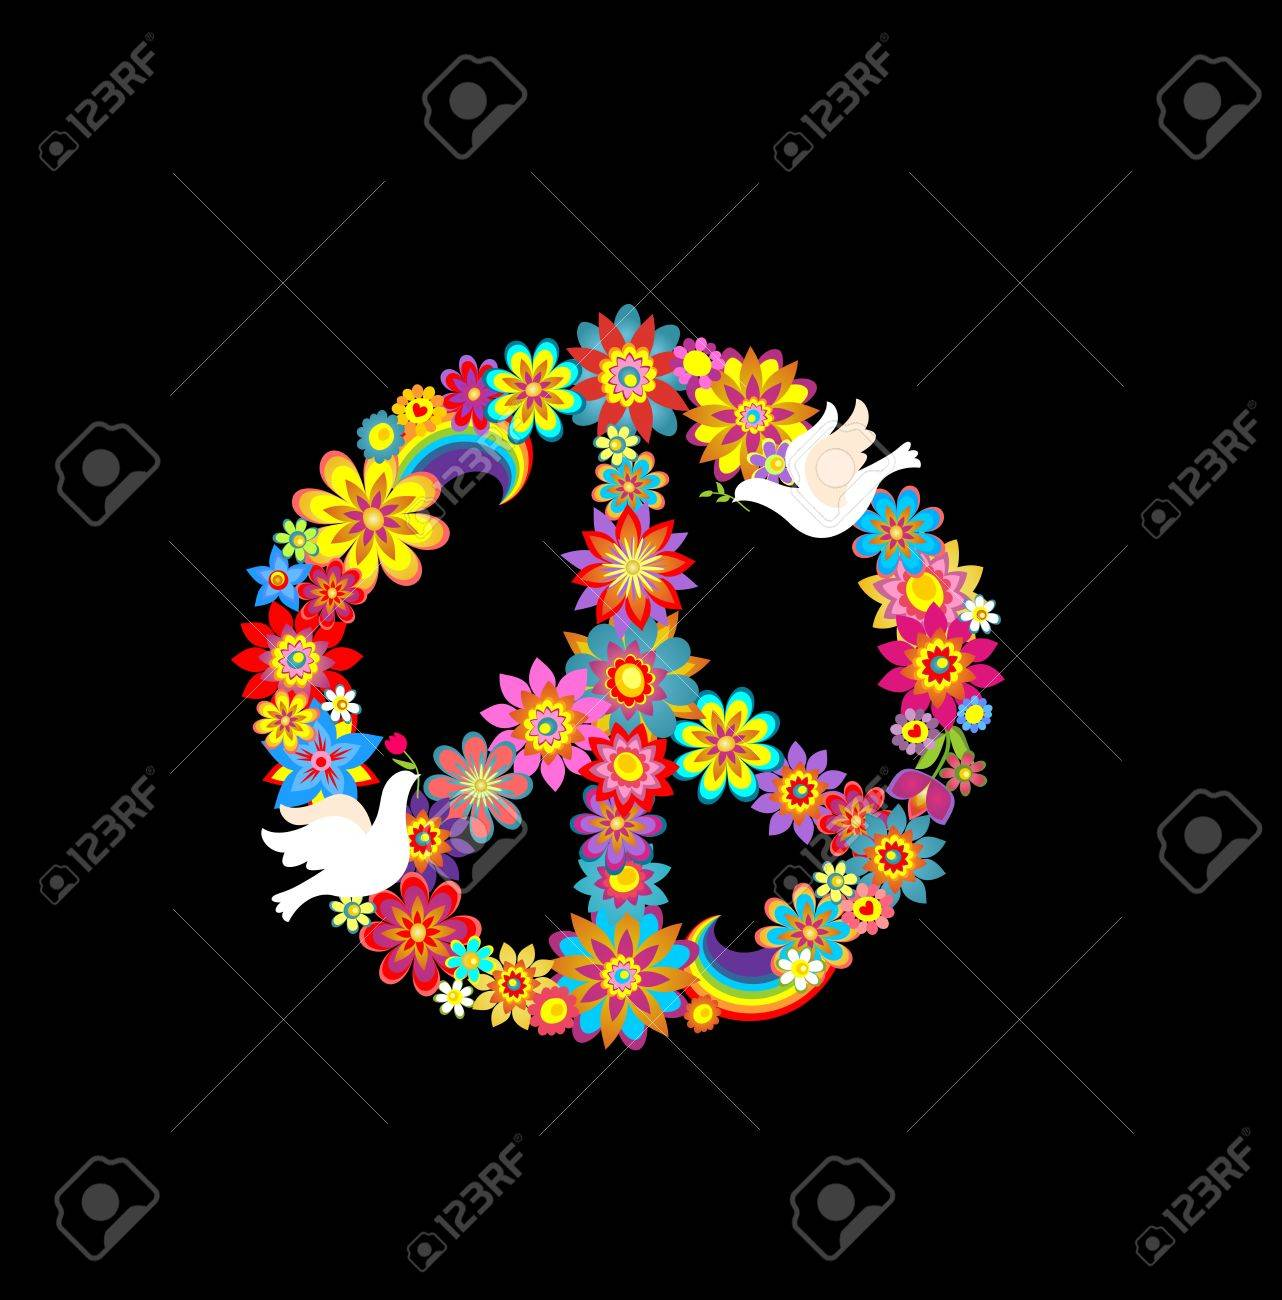 Peace flower symbol with paper doves royalty free cliparts vectors peace flower symbol with paper doves stock vector 57525533 biocorpaavc Images